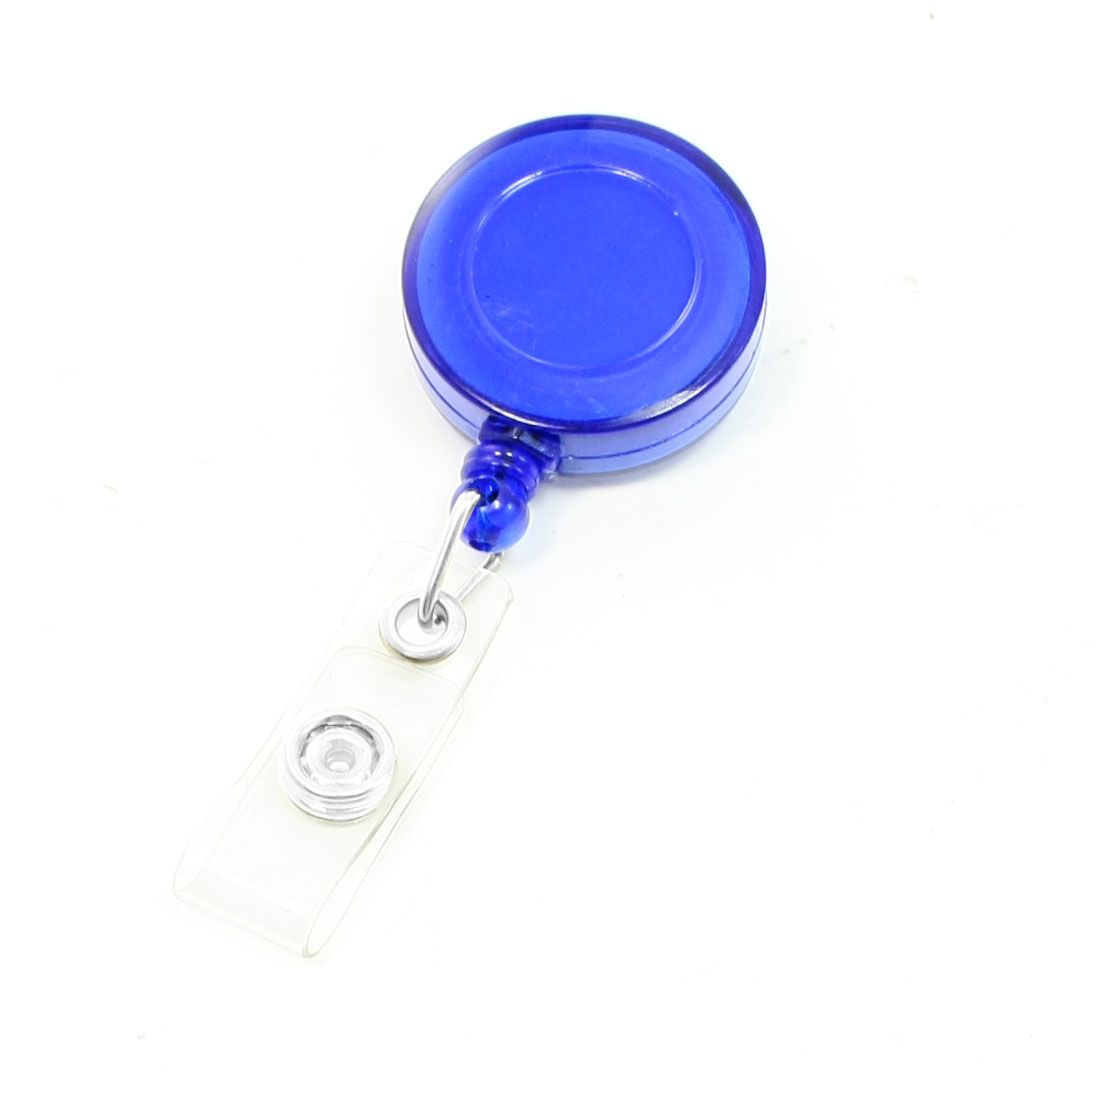 Round Plastic Shell Personal Item Safety Guard Pull String Clear Blue